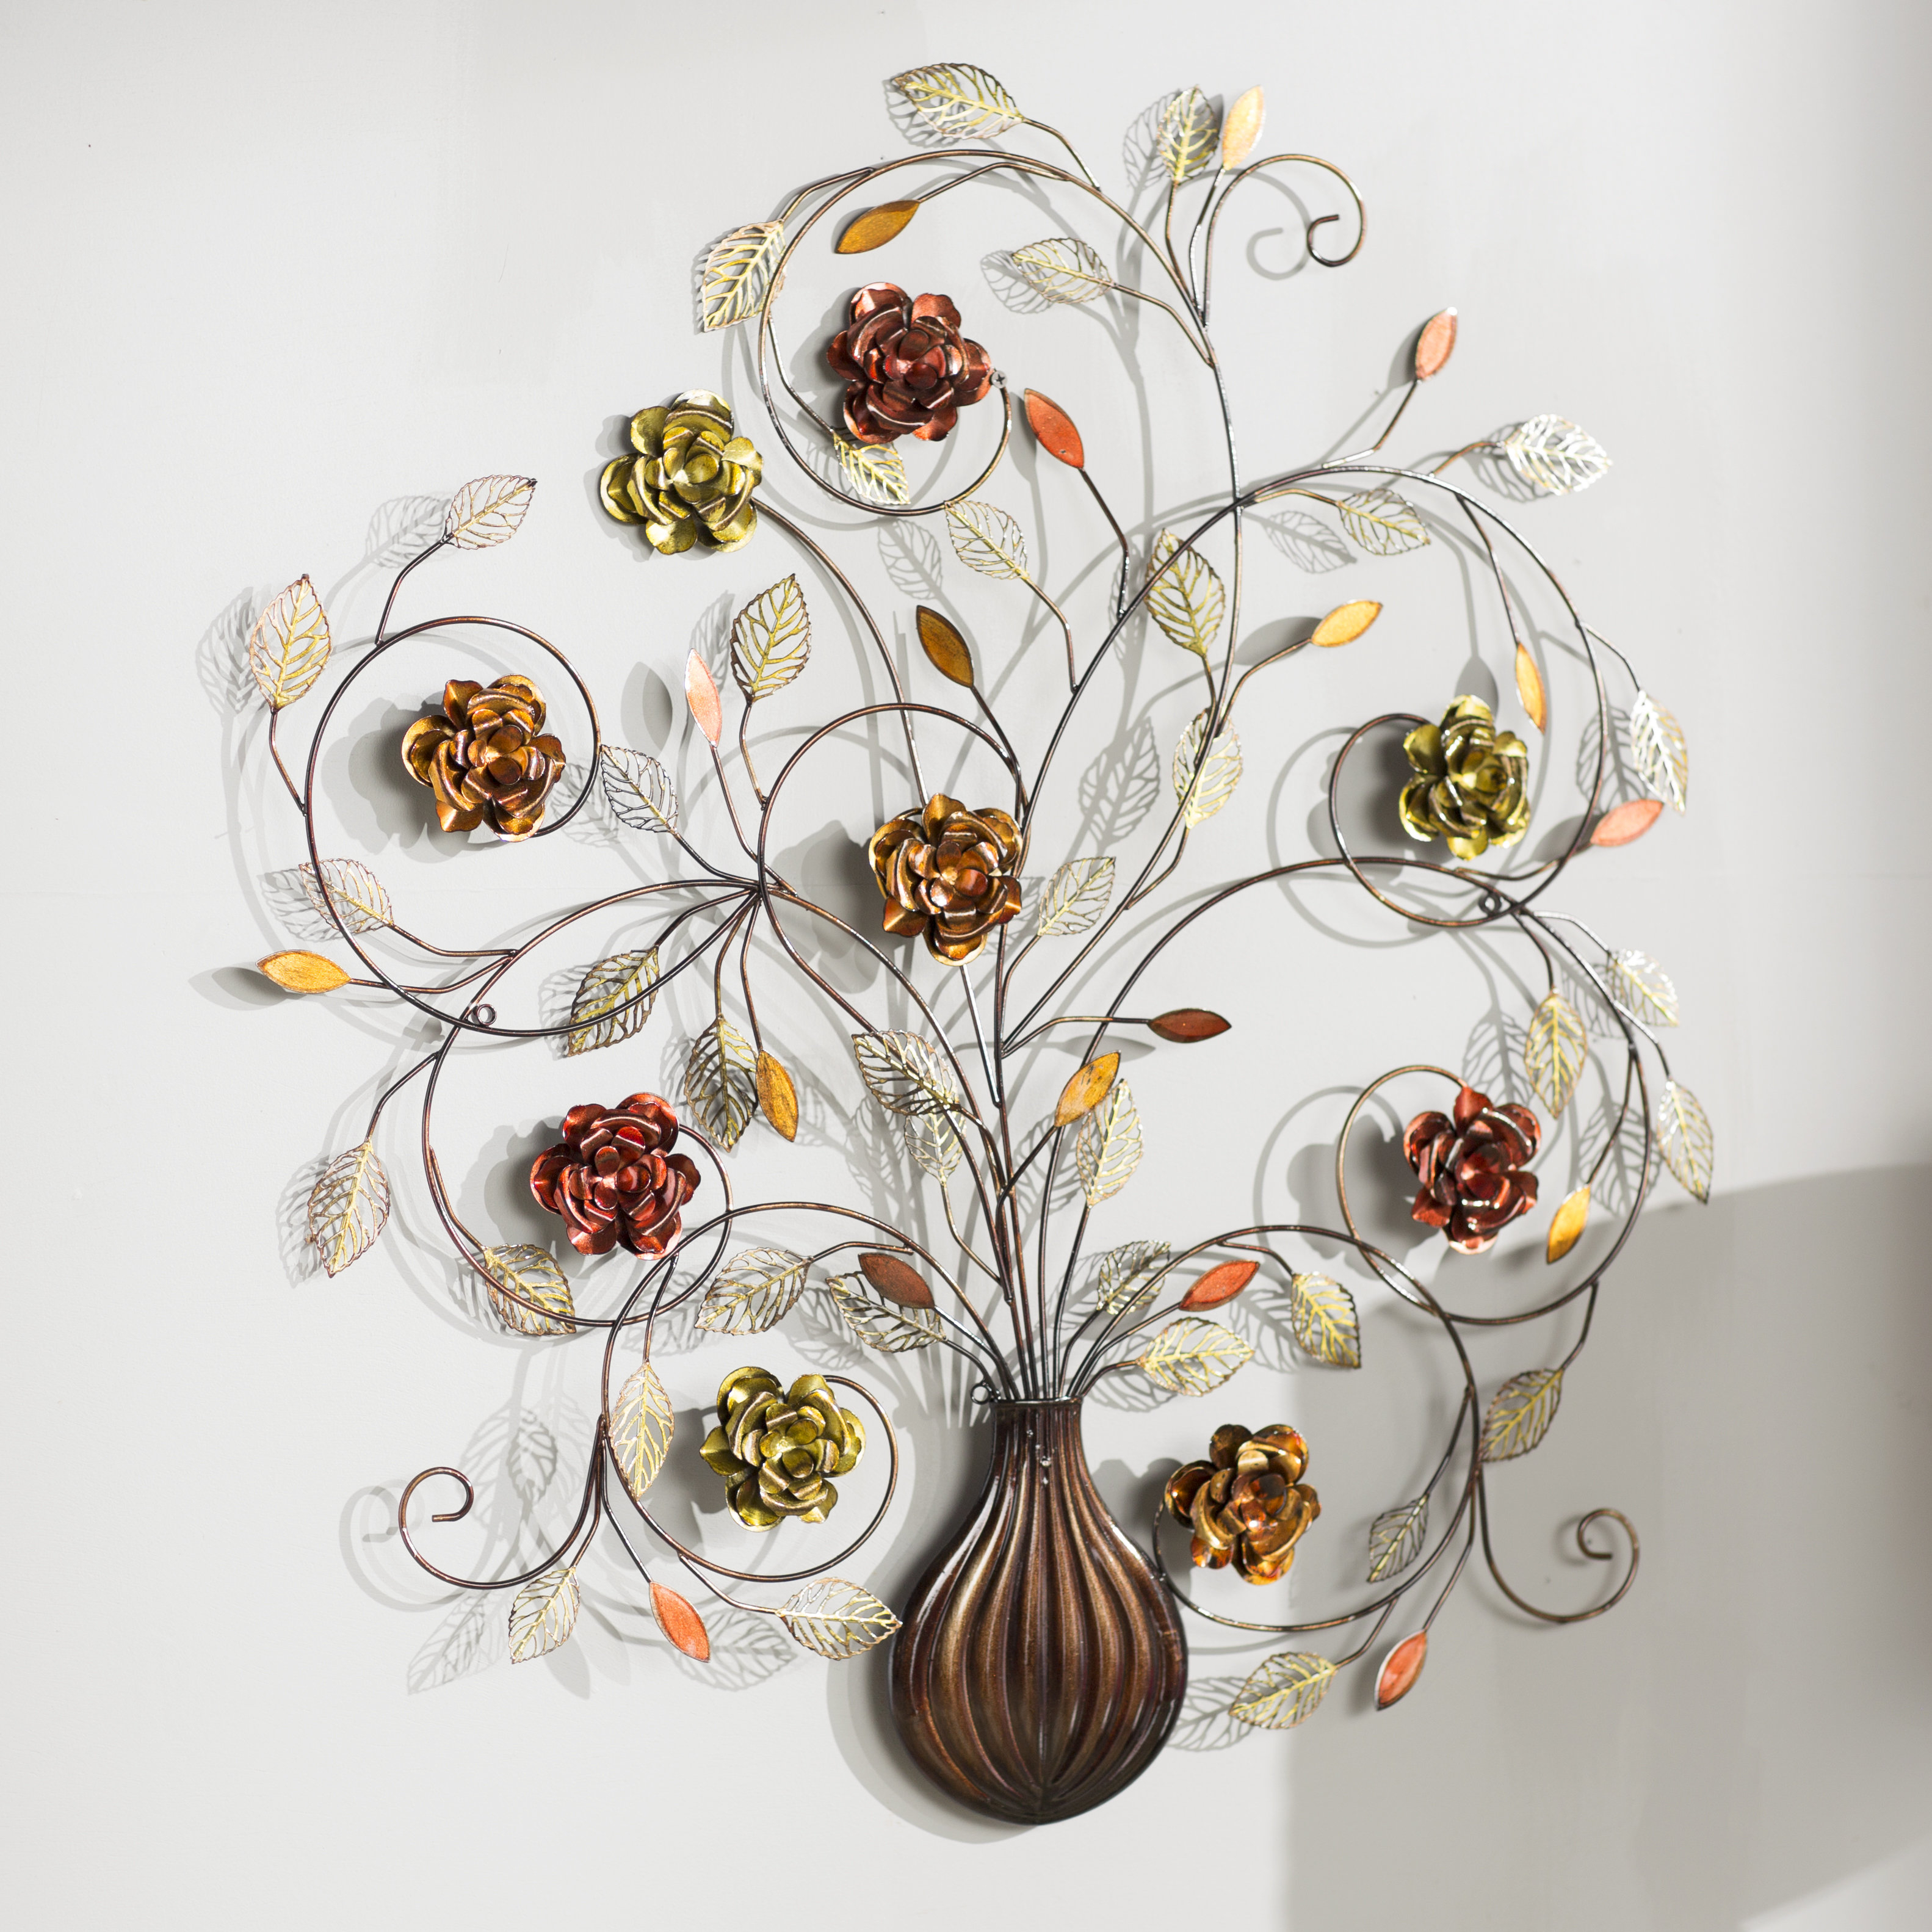 Alcott Hill Raheem Flowers Metal Wall Décor & Reviews Intended For Scattered Metal Italian Plates Wall Decor (View 24 of 30)